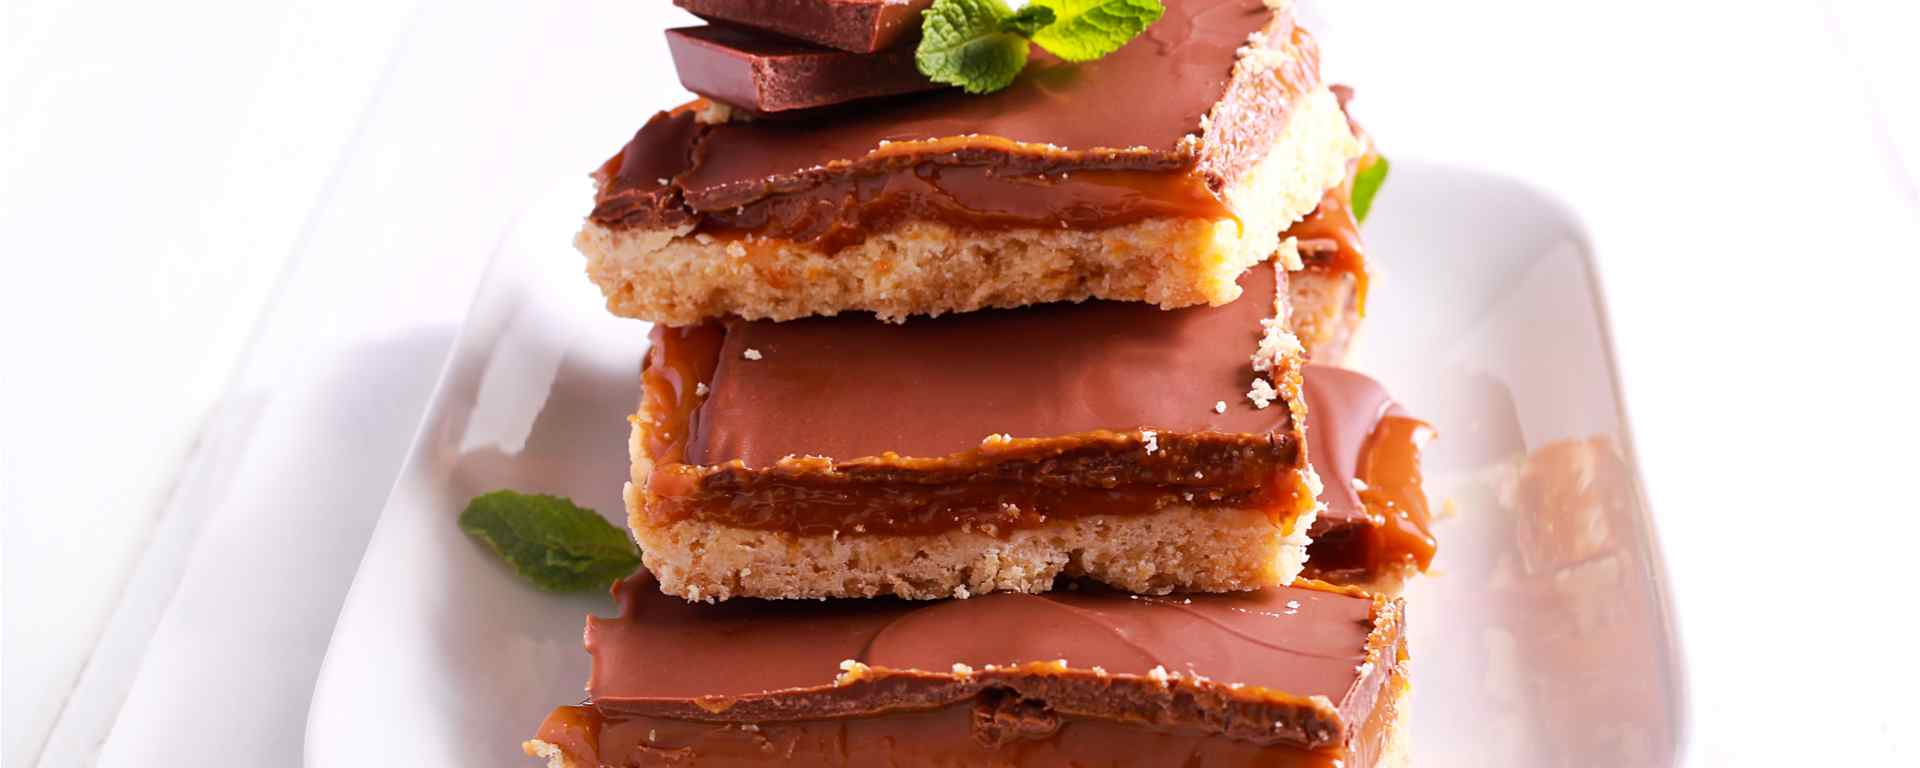 Photo for - Barres sablées au dulce de leche et au chocolat